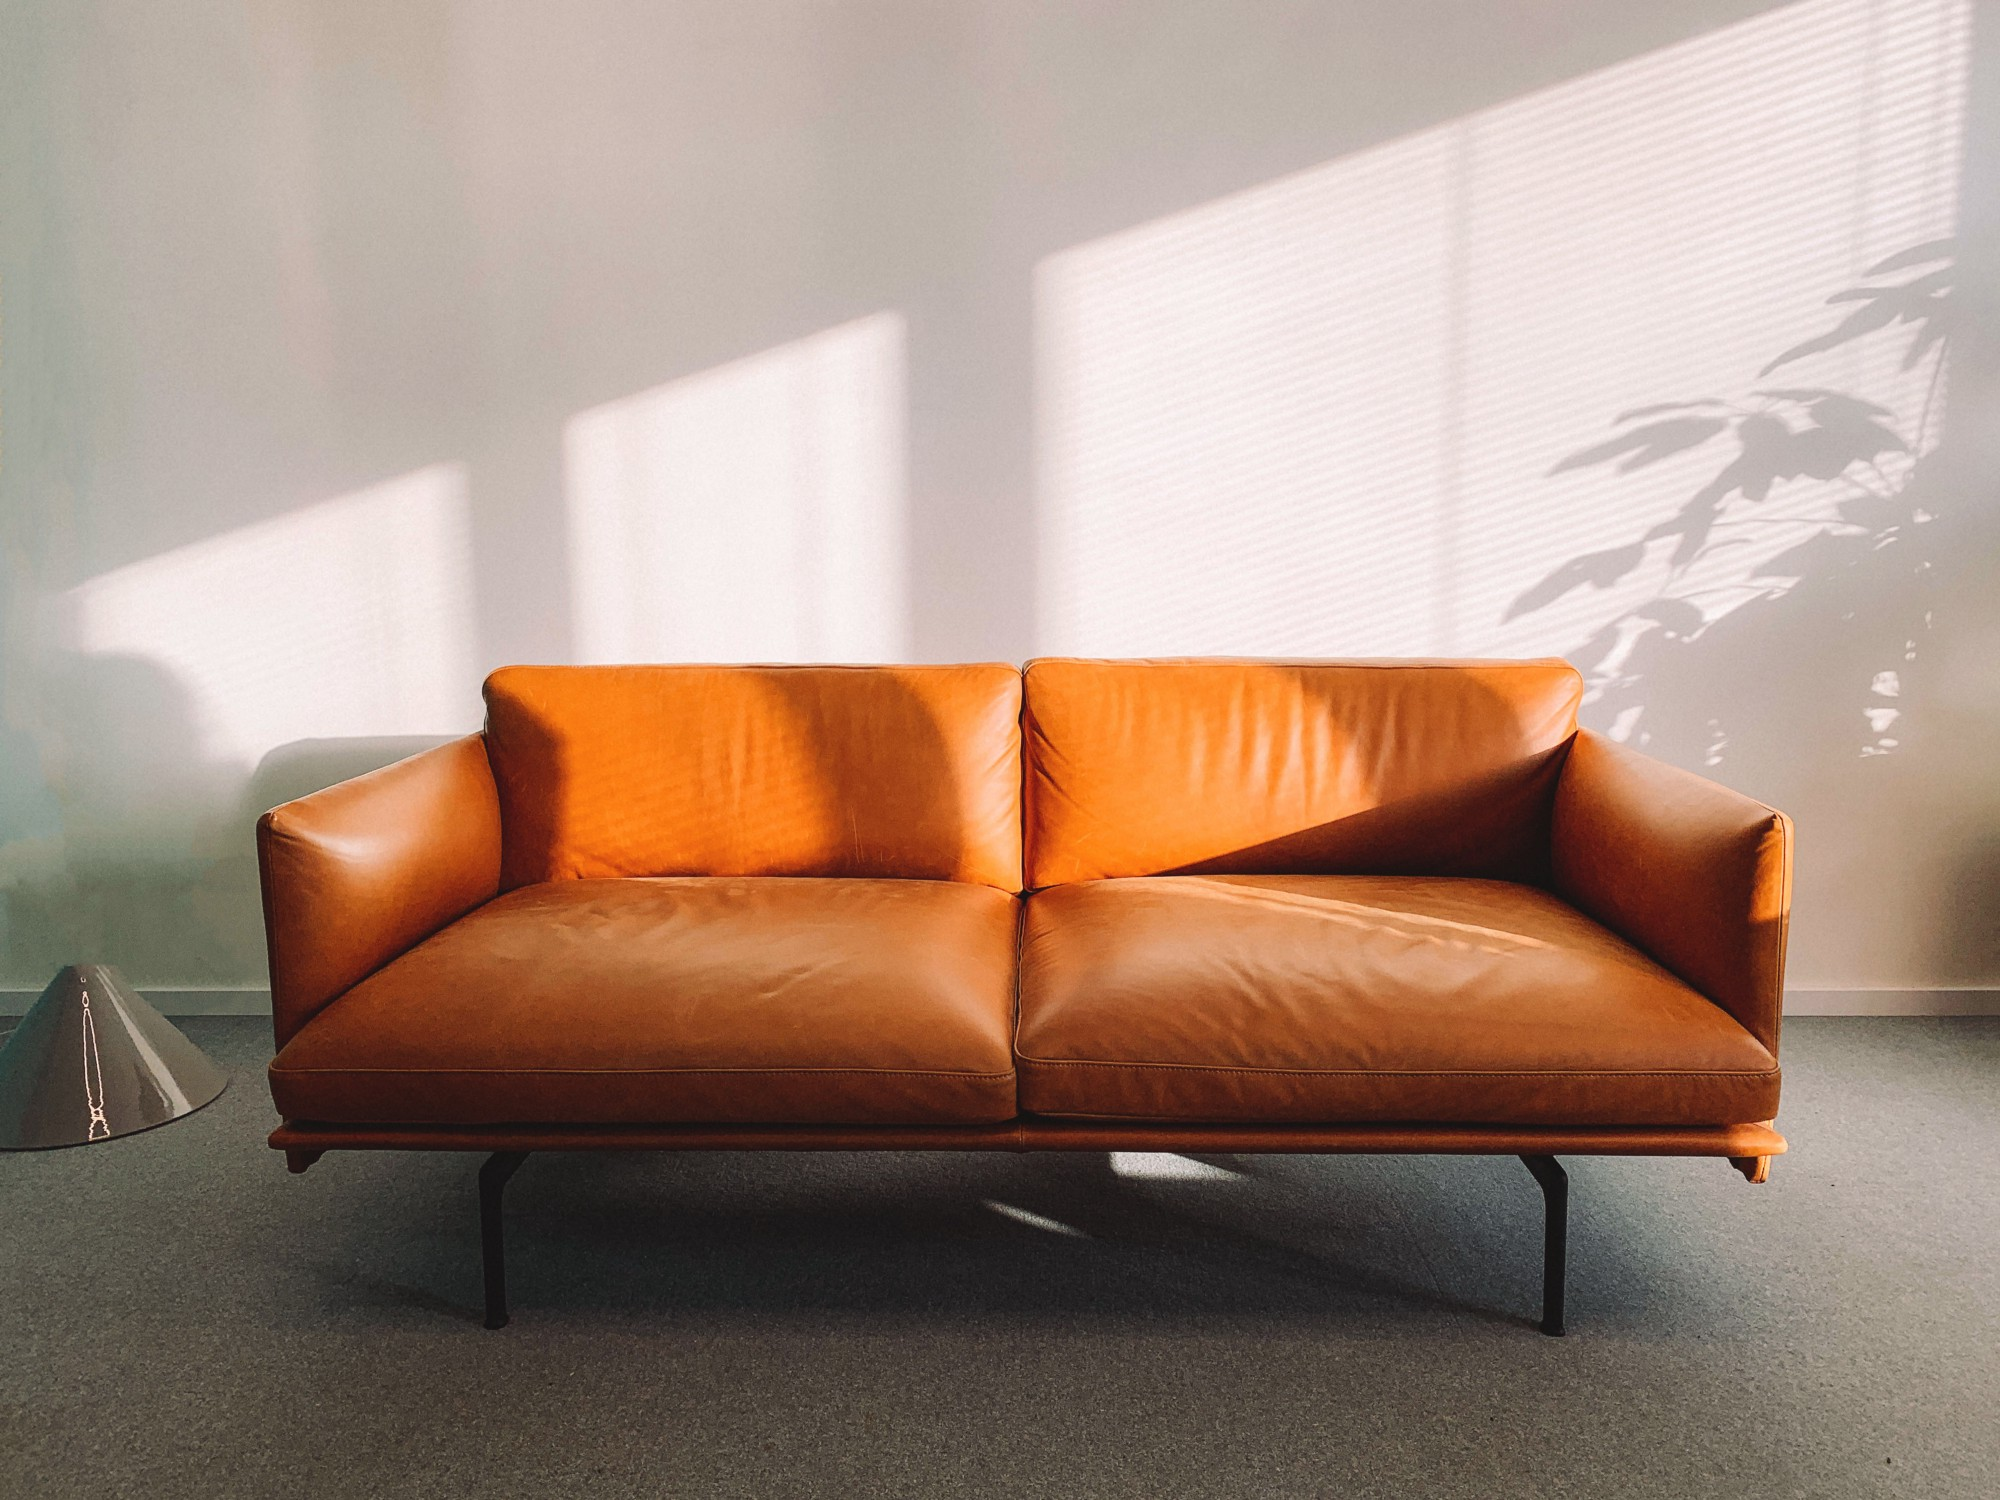 Orange leather couch in an empty room with sunbeams and shadows of a plant on the white wall